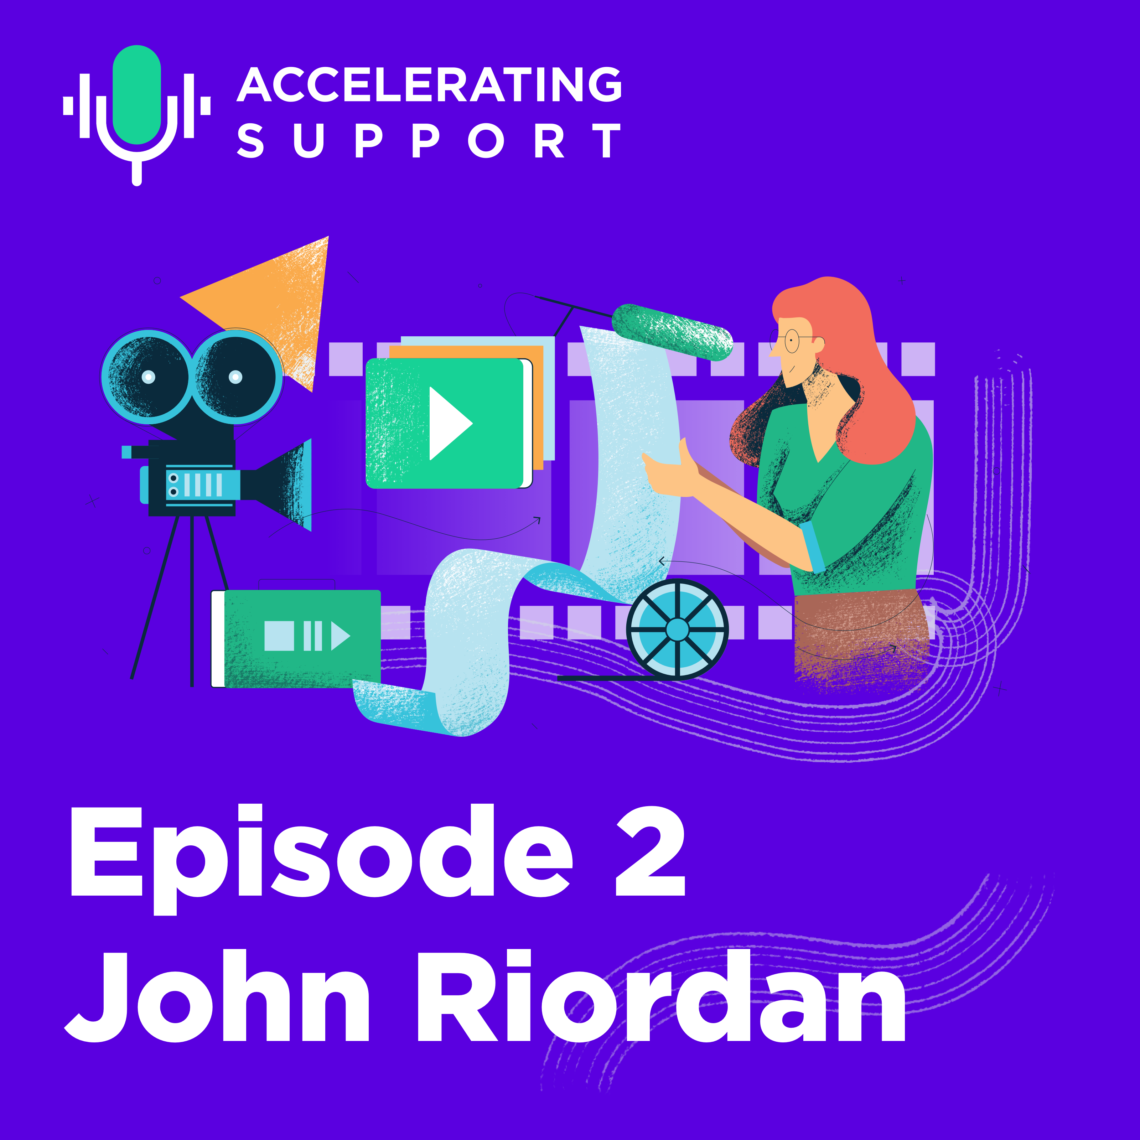 John Riordan Accelerating Support